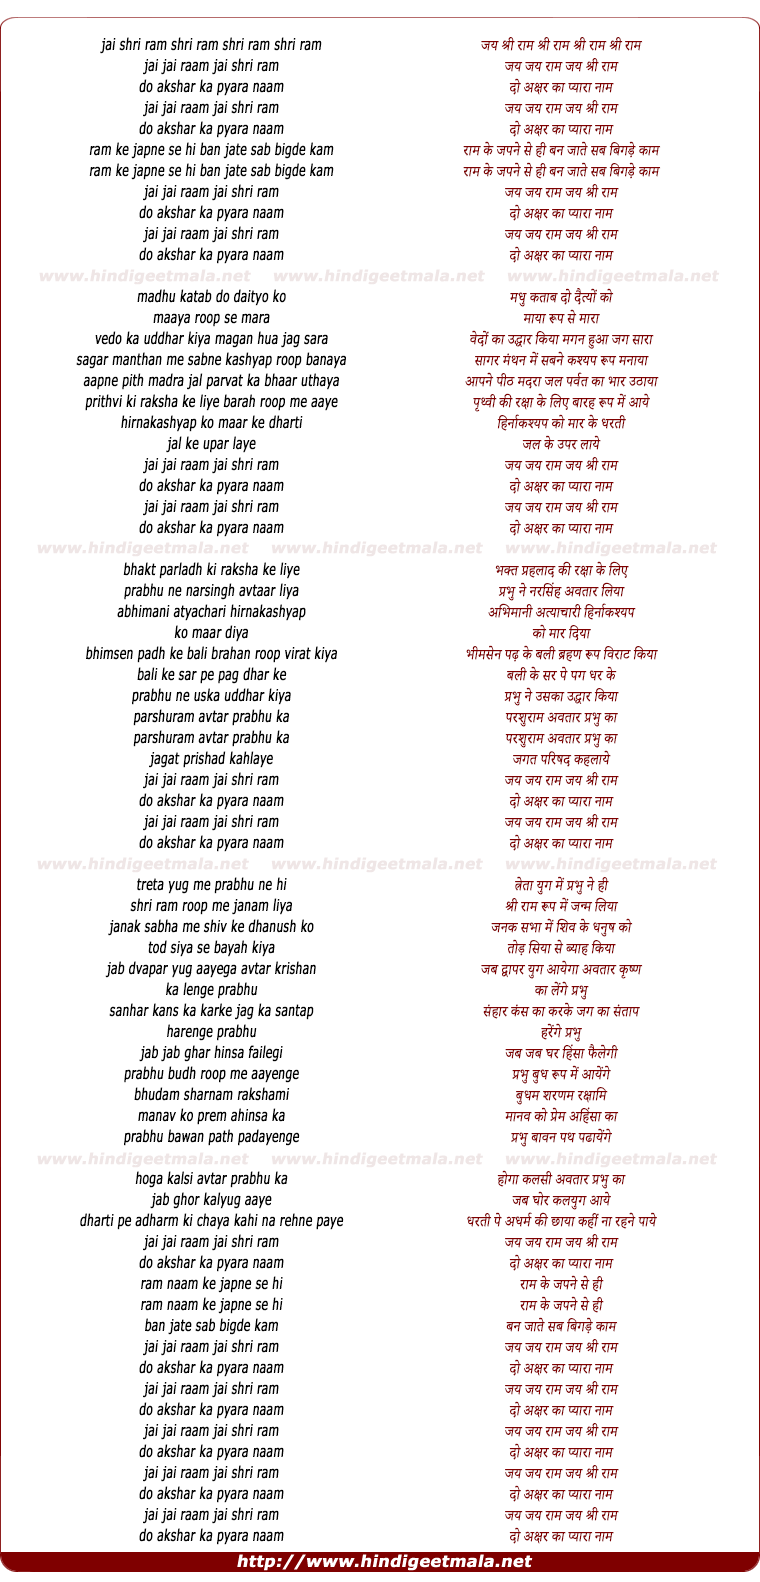 lyrics of song Jai Jai Ram Jai Shri Ram Do Aksar Ka Pyara Naam